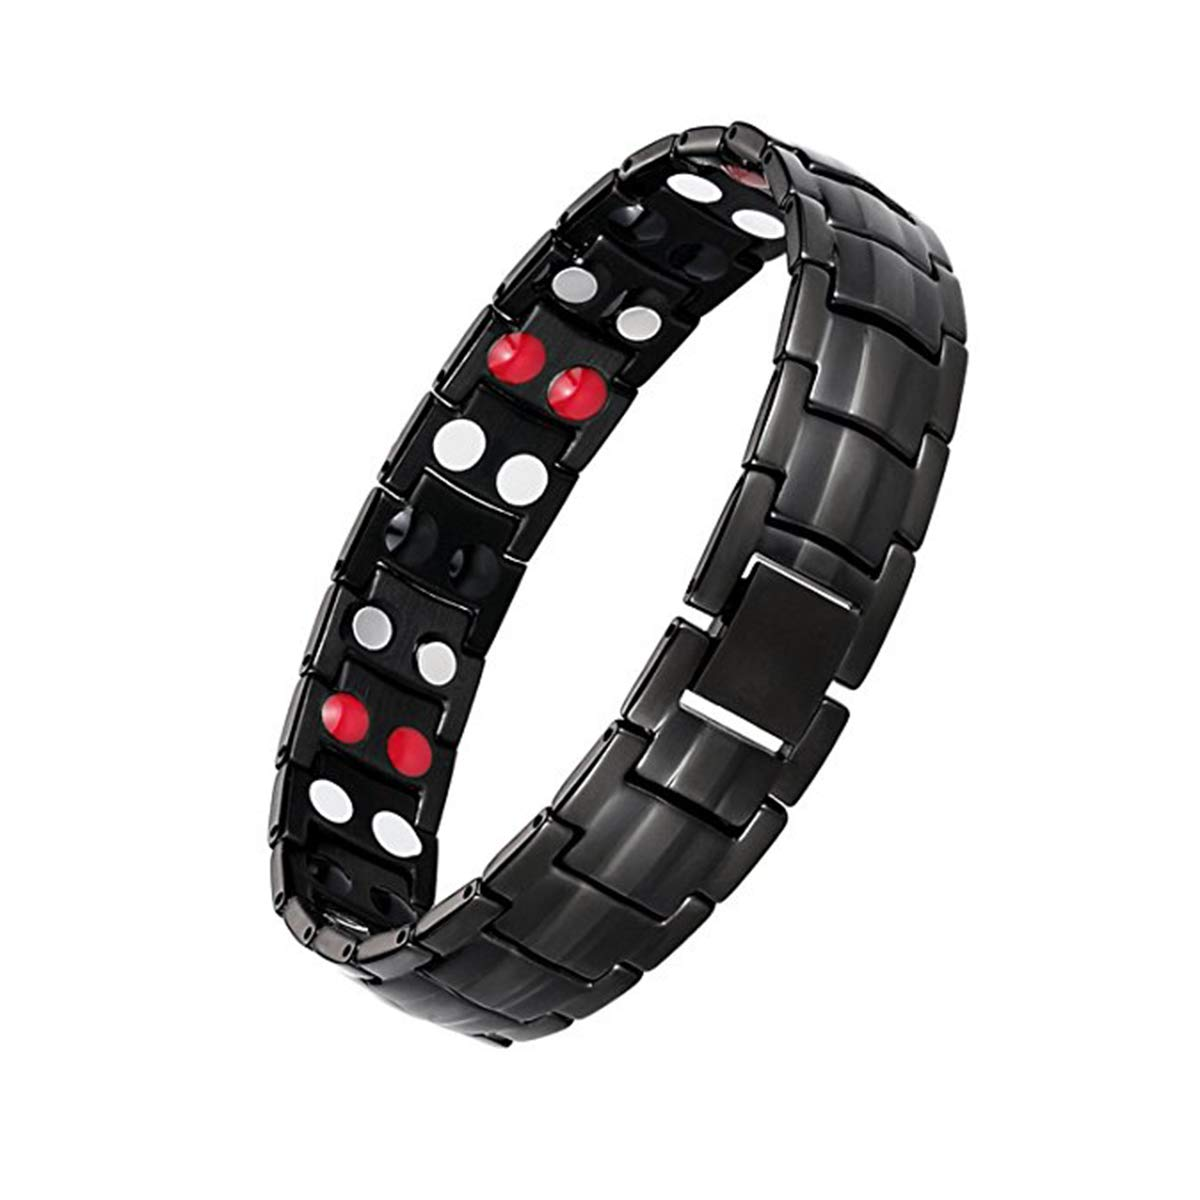 Feraco Magnetic Bracelets for Men Arthritis Relief Pain Health Double Row 4 Elements Strong Magnets, Black